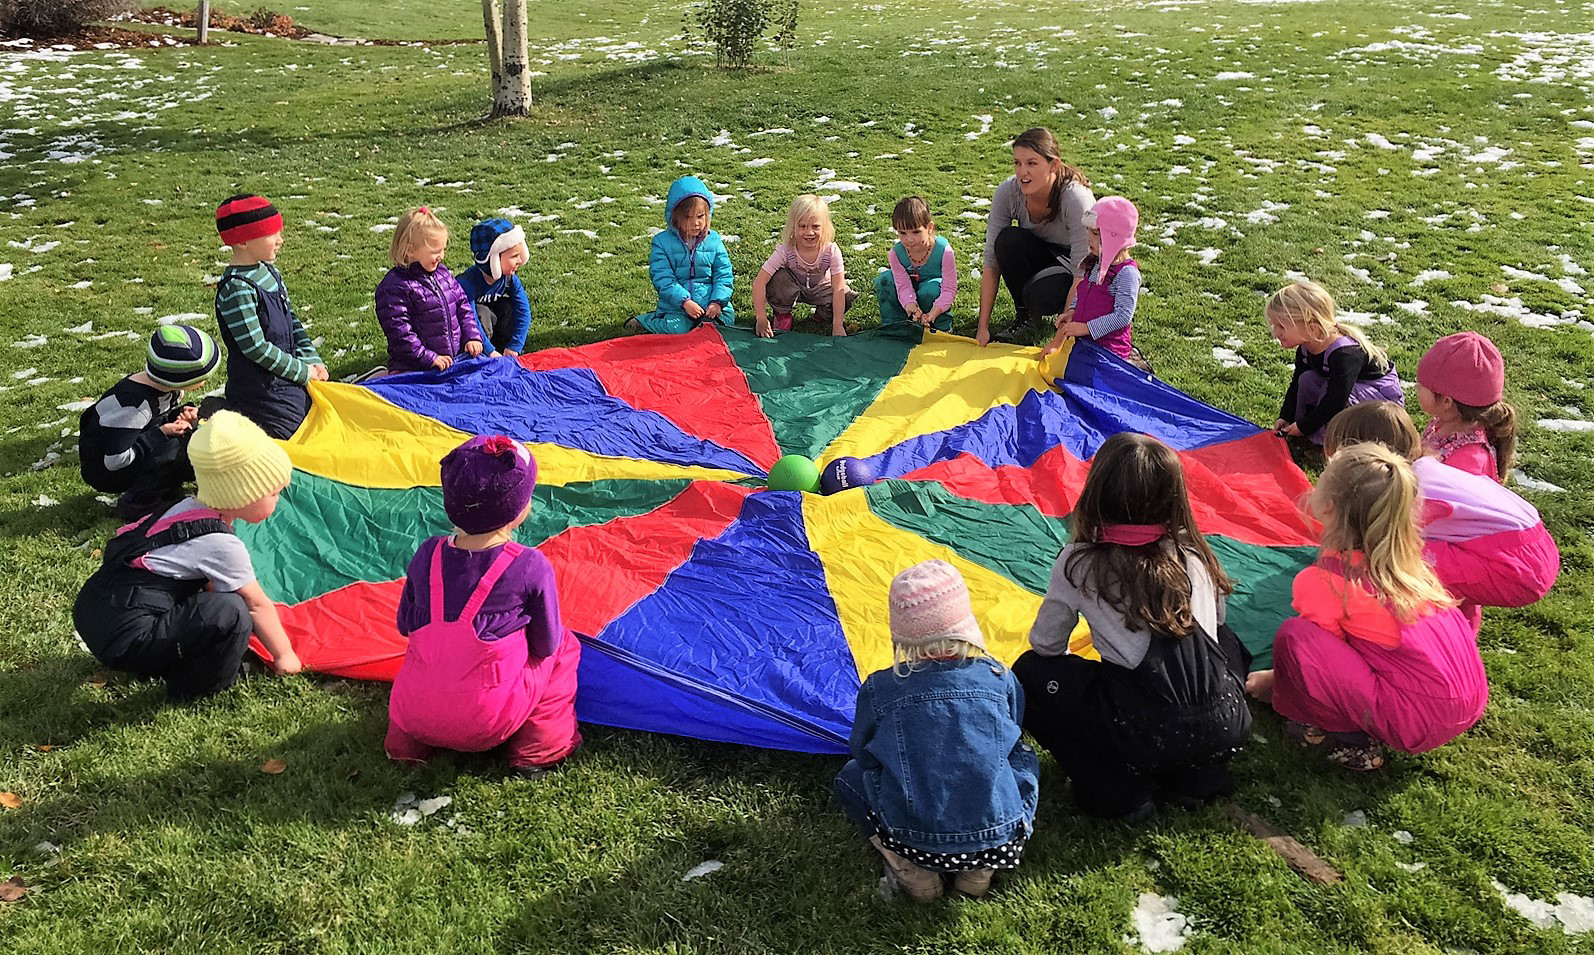 Children playing with a parachute